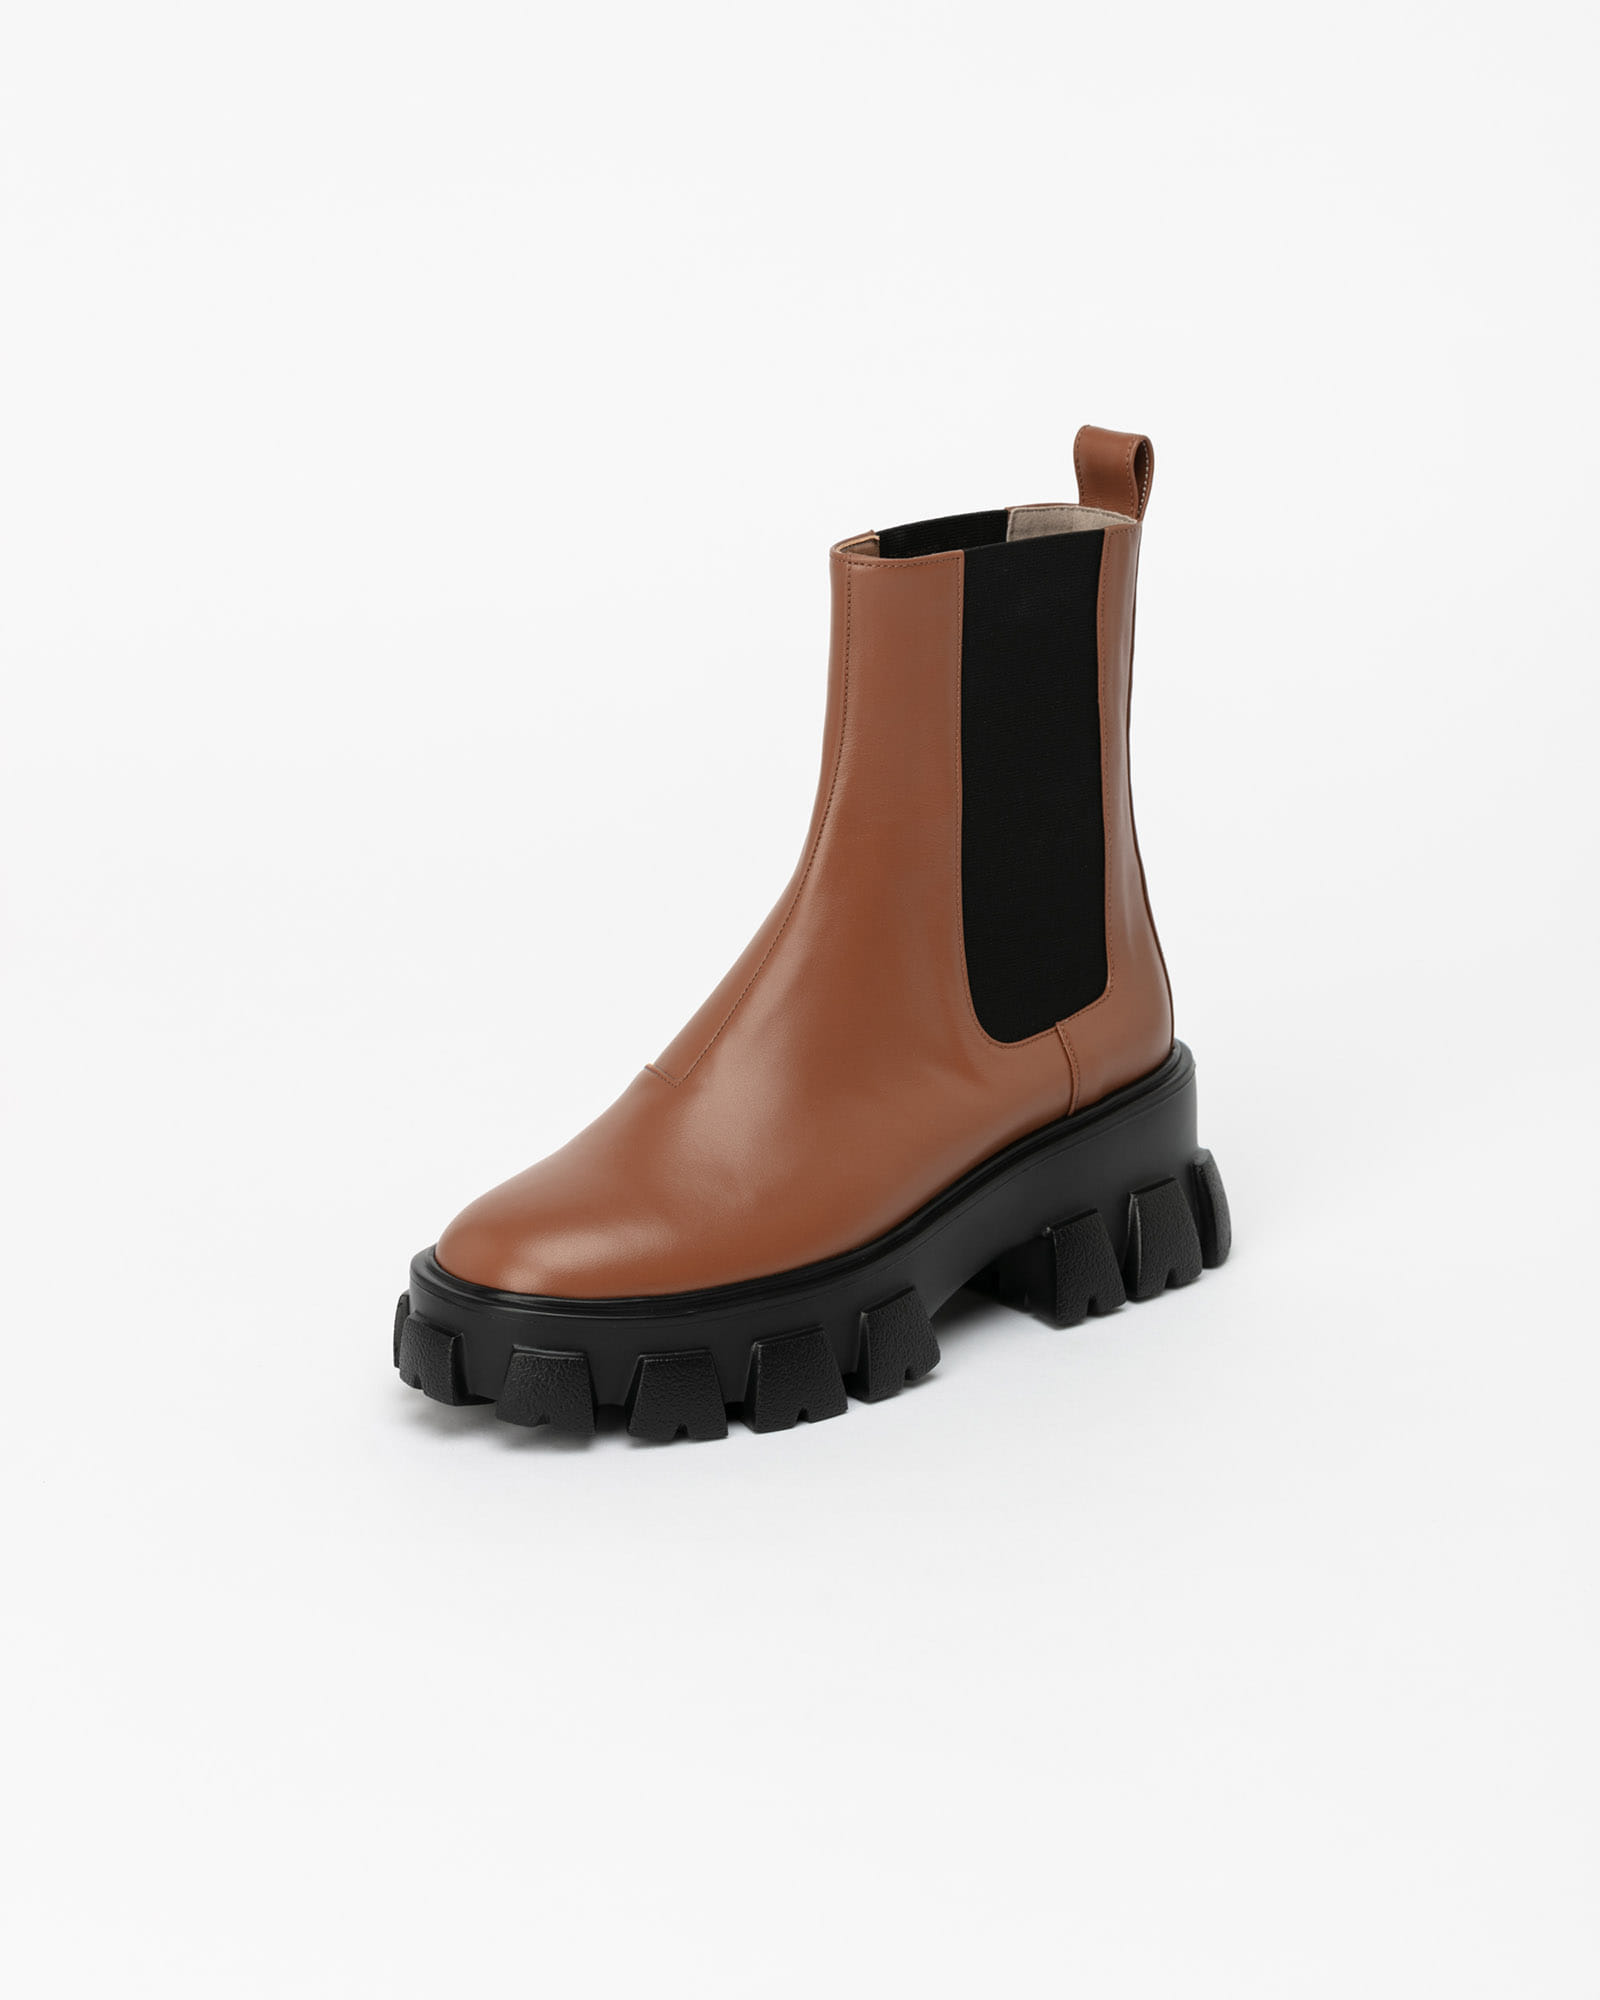 Legera Lug-sole Chelsea Boots in Starfish Camel